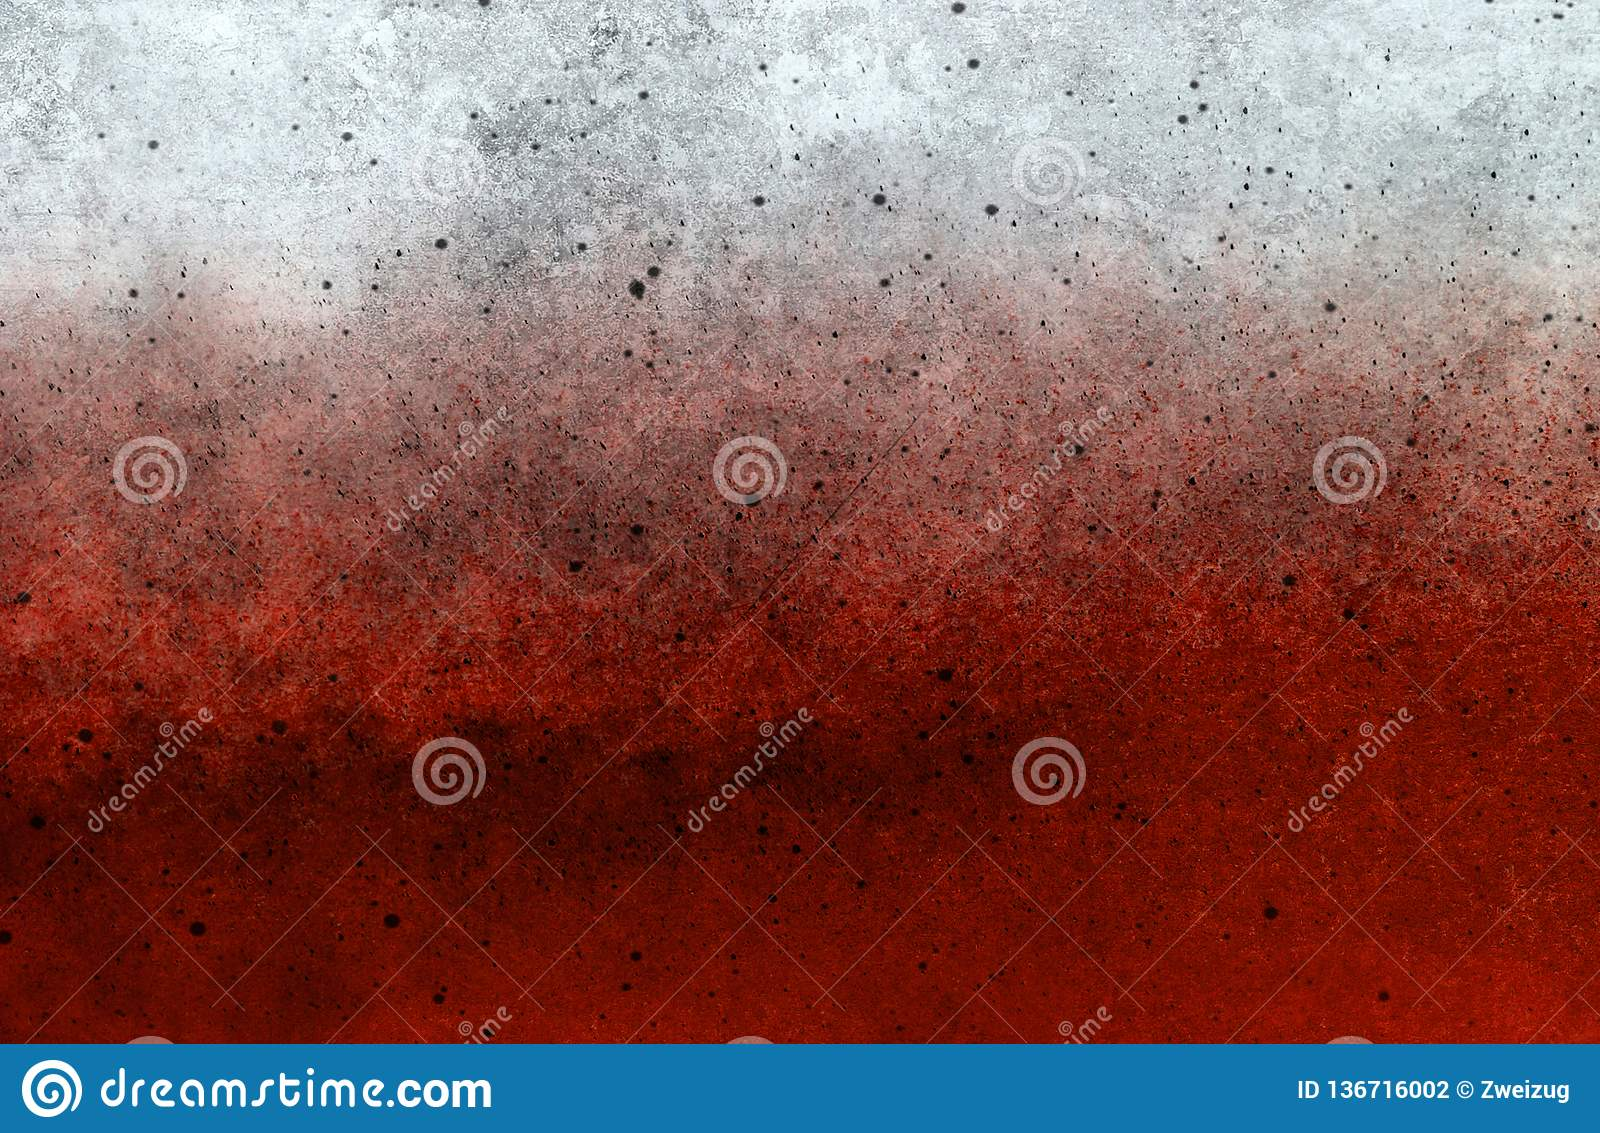 Blood Stone Grunge Worn Texture Old Paper Background Stock Photo Image Of Grain Abstract 136716002 1,506 free images of metal texture. https www dreamstime com blood stone grunge worn texture old paper background stains splatter has got look perfect image136716002